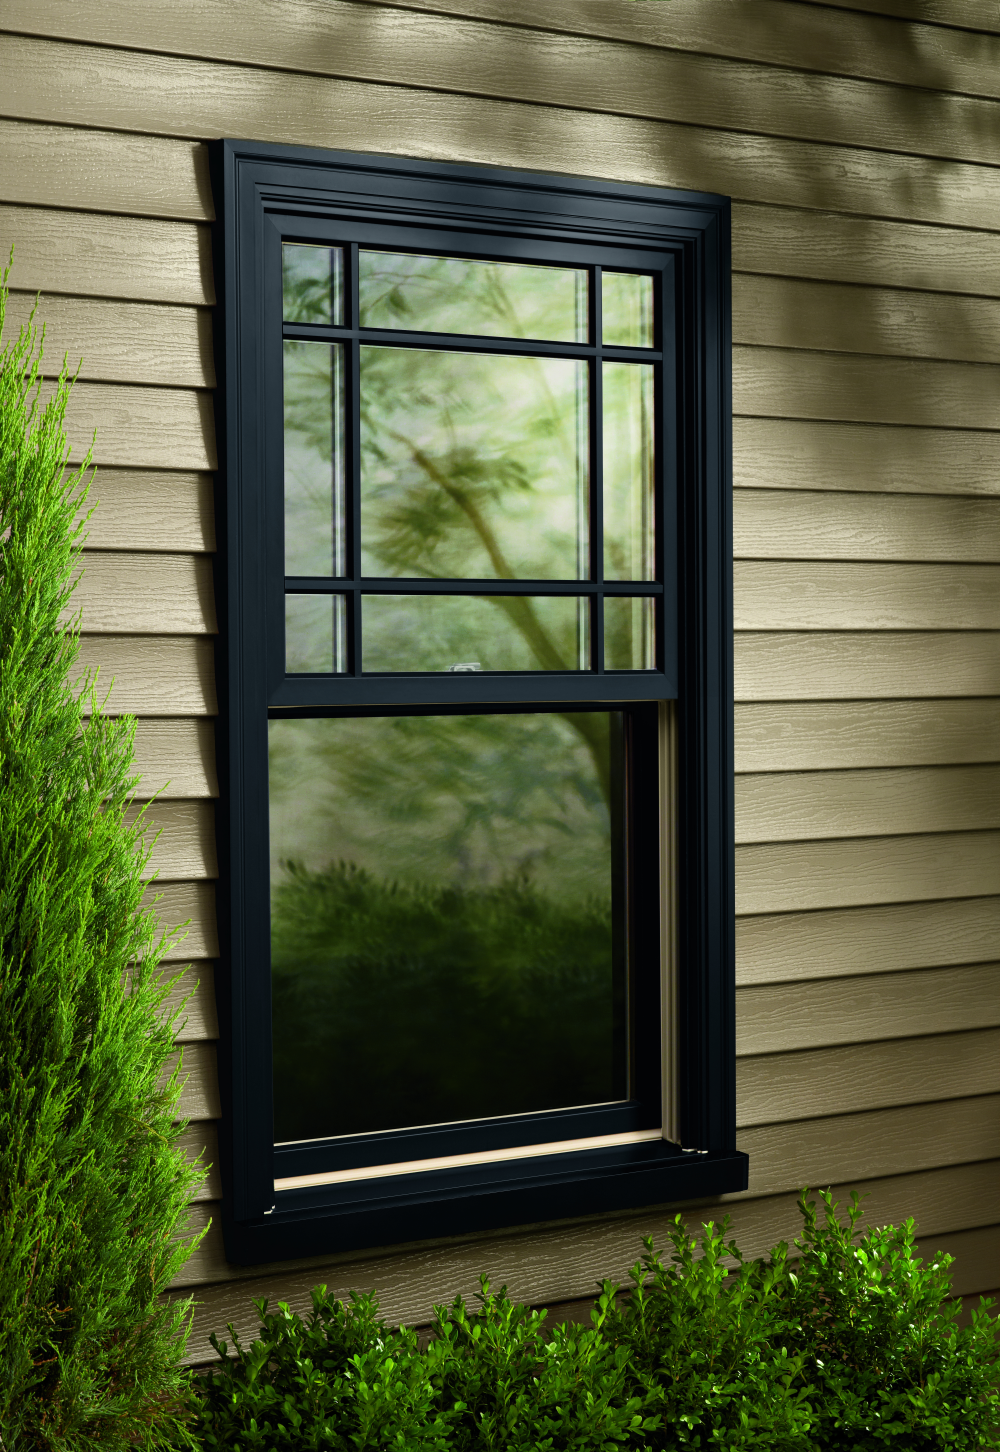 Window trim ideas and styles window trim is made to cover - Exterior window trim ideas pictures ...